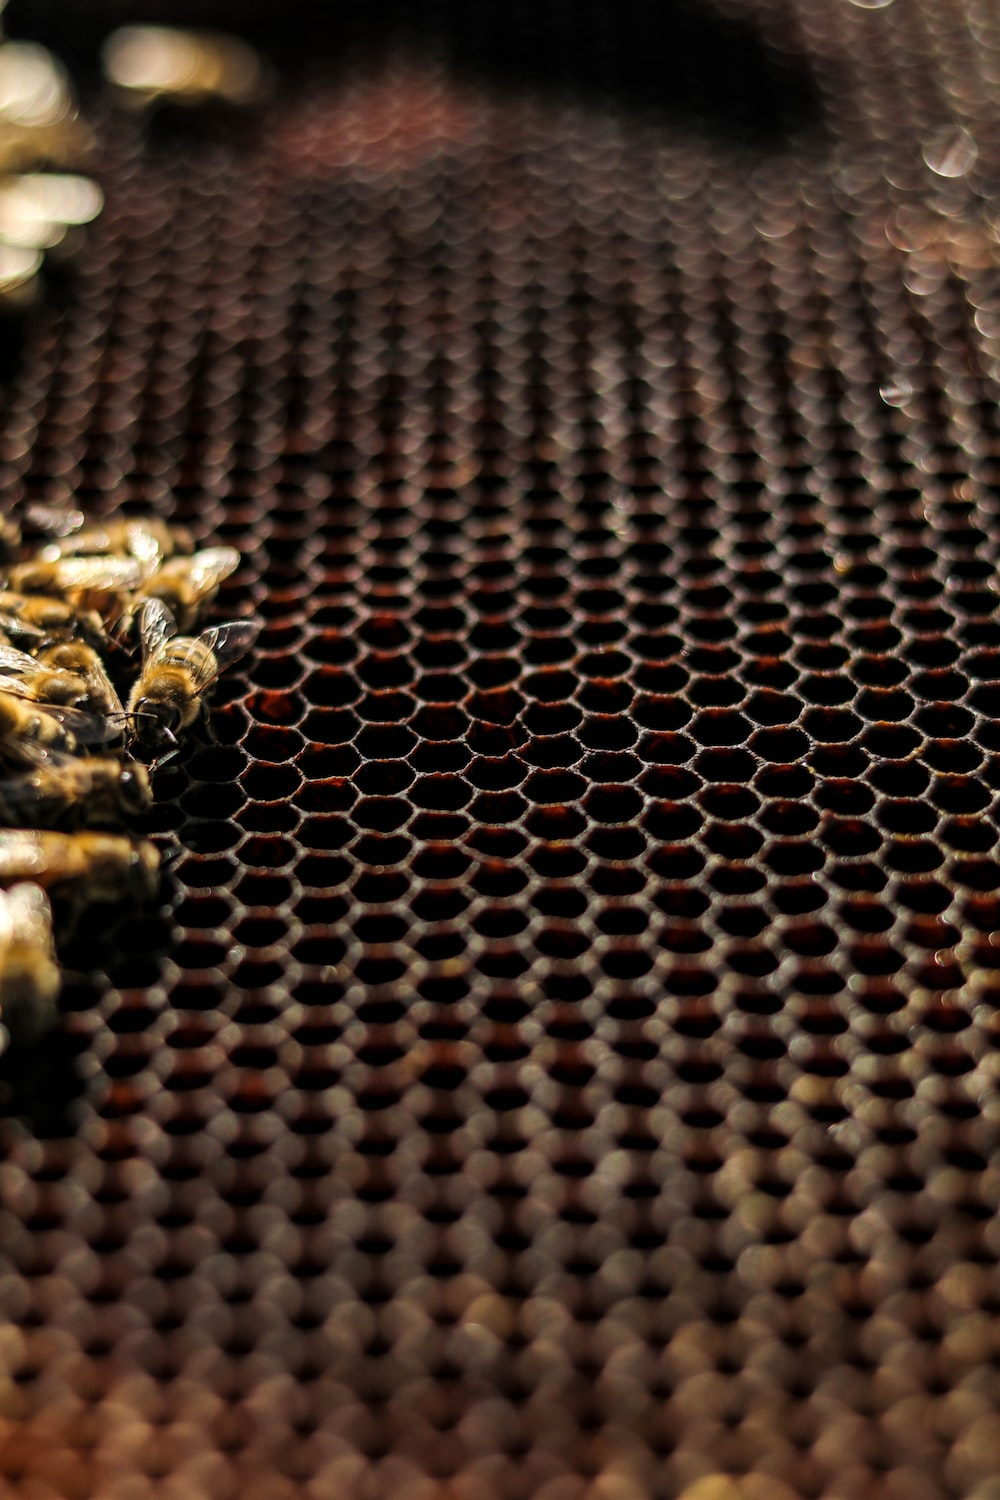 brown and black bee on brown and black textile